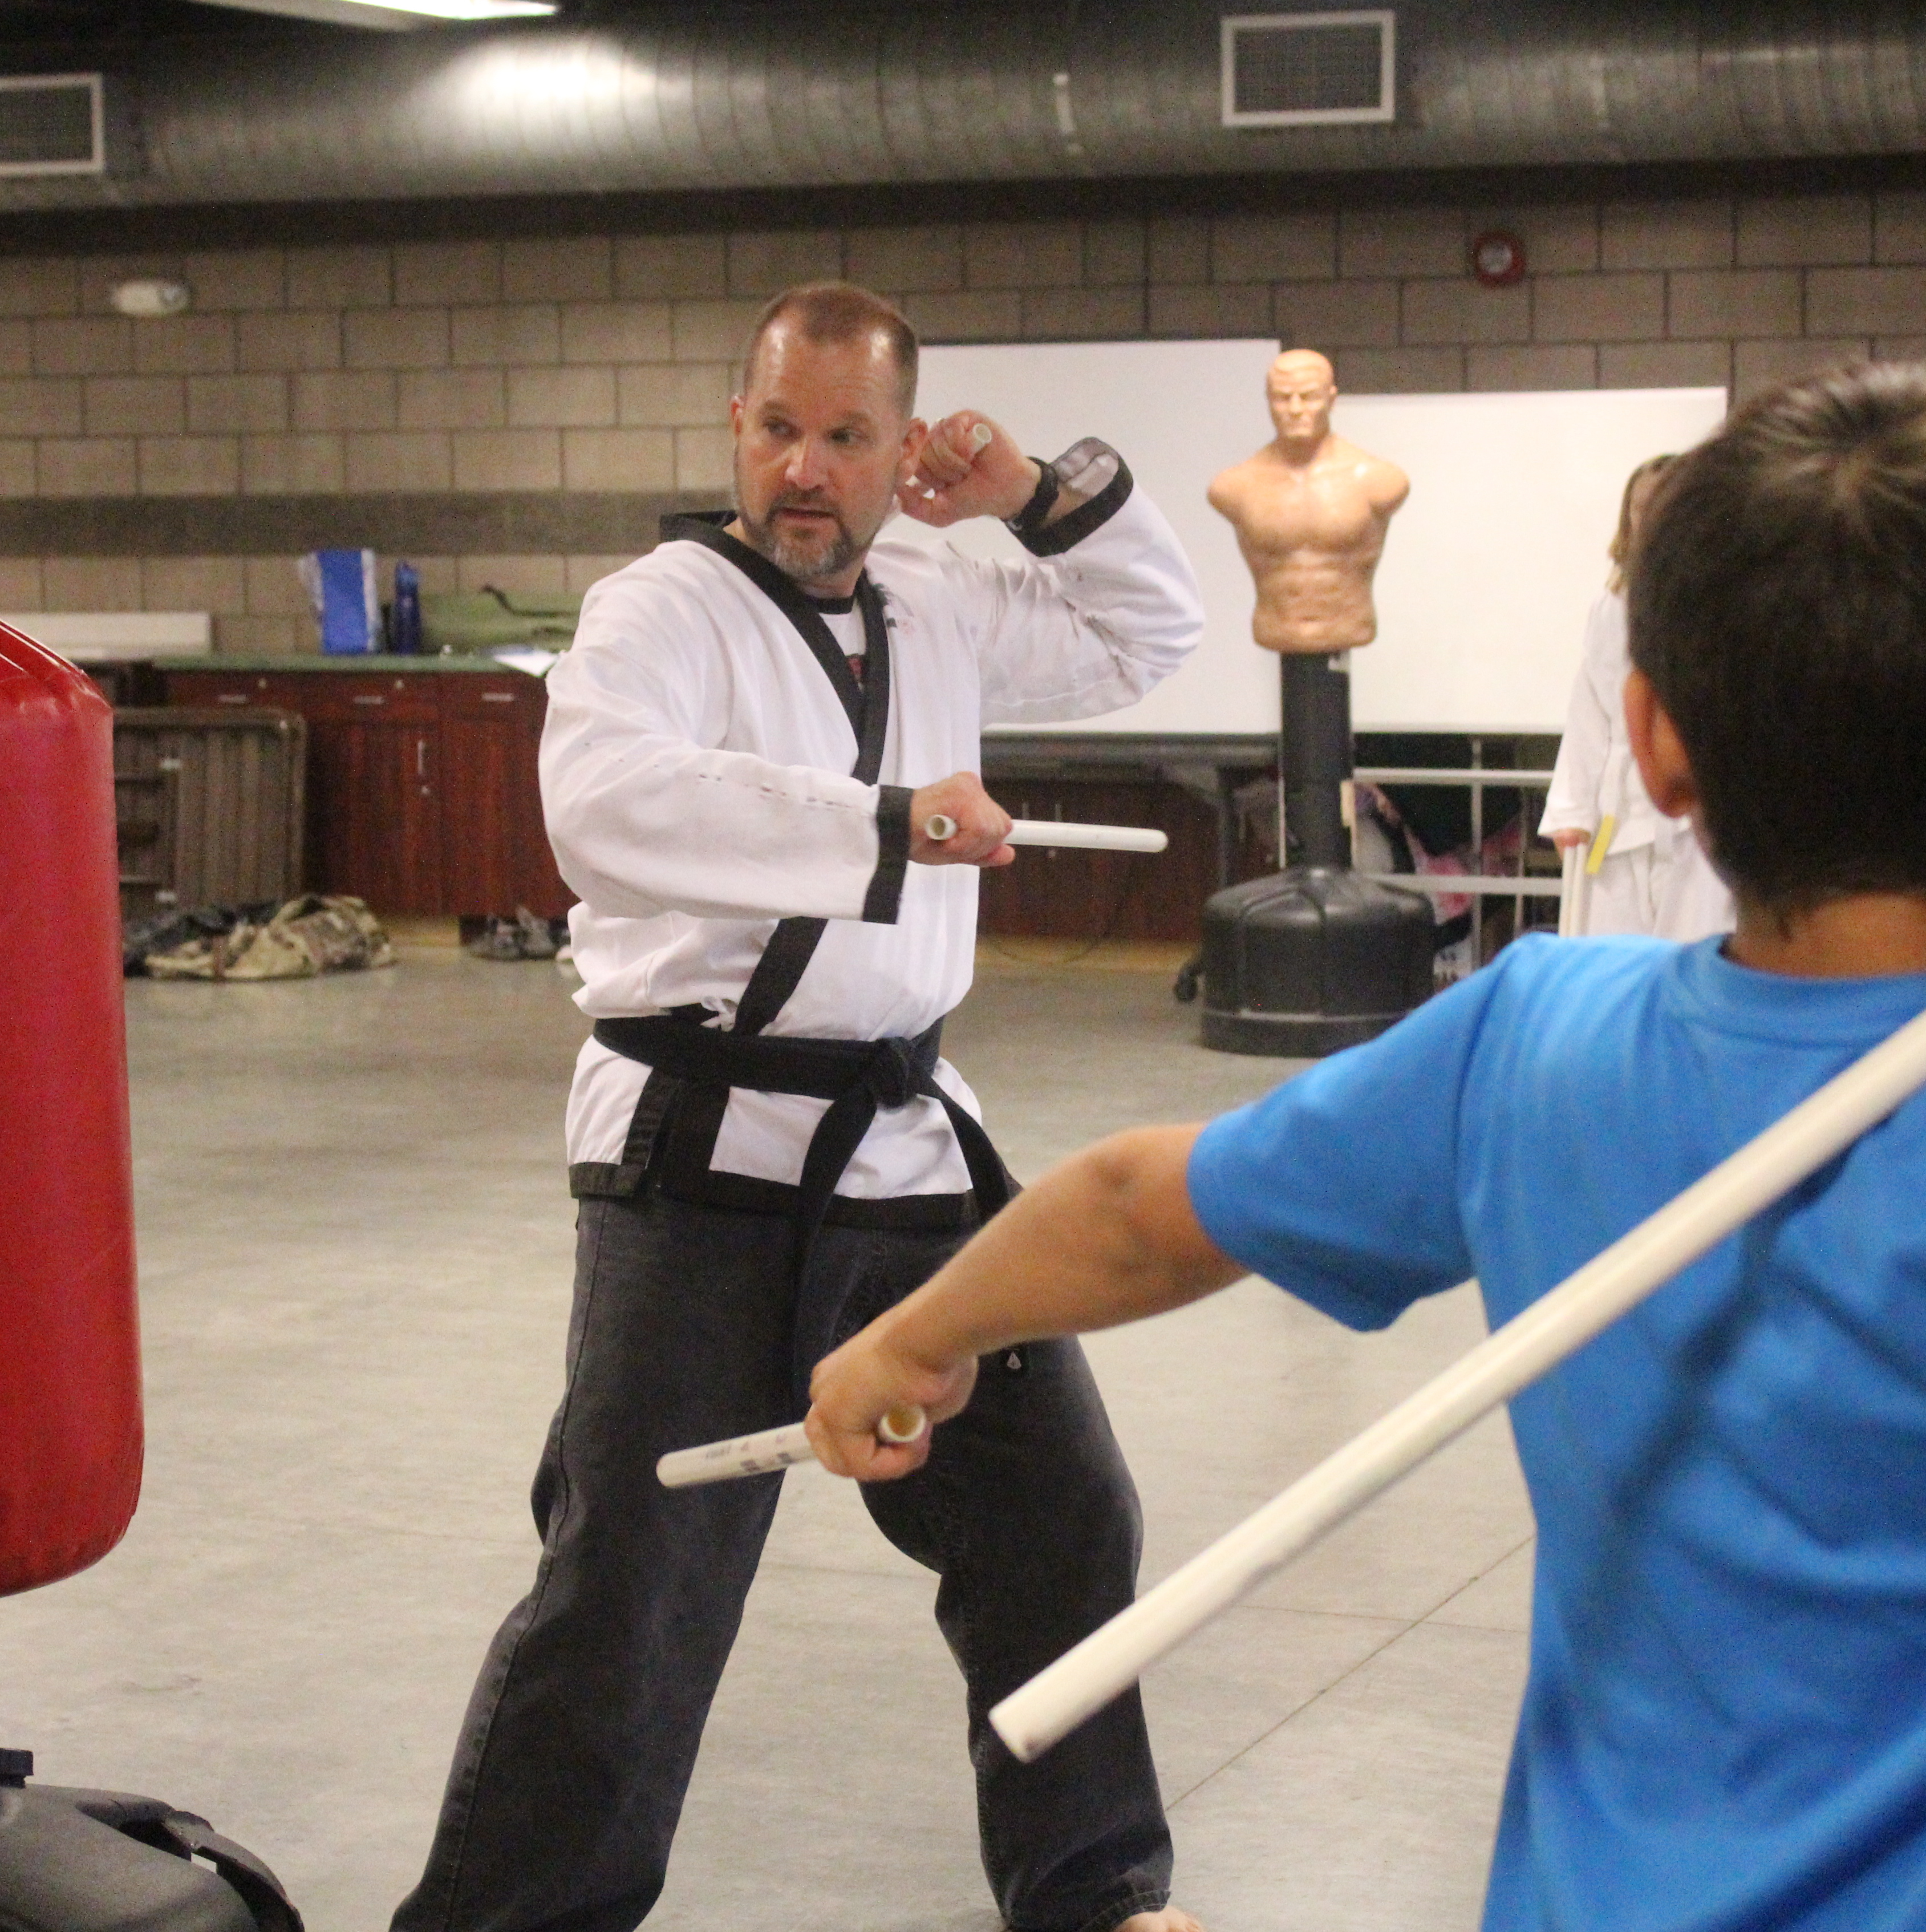 Local youth training with a martial arts instructor.